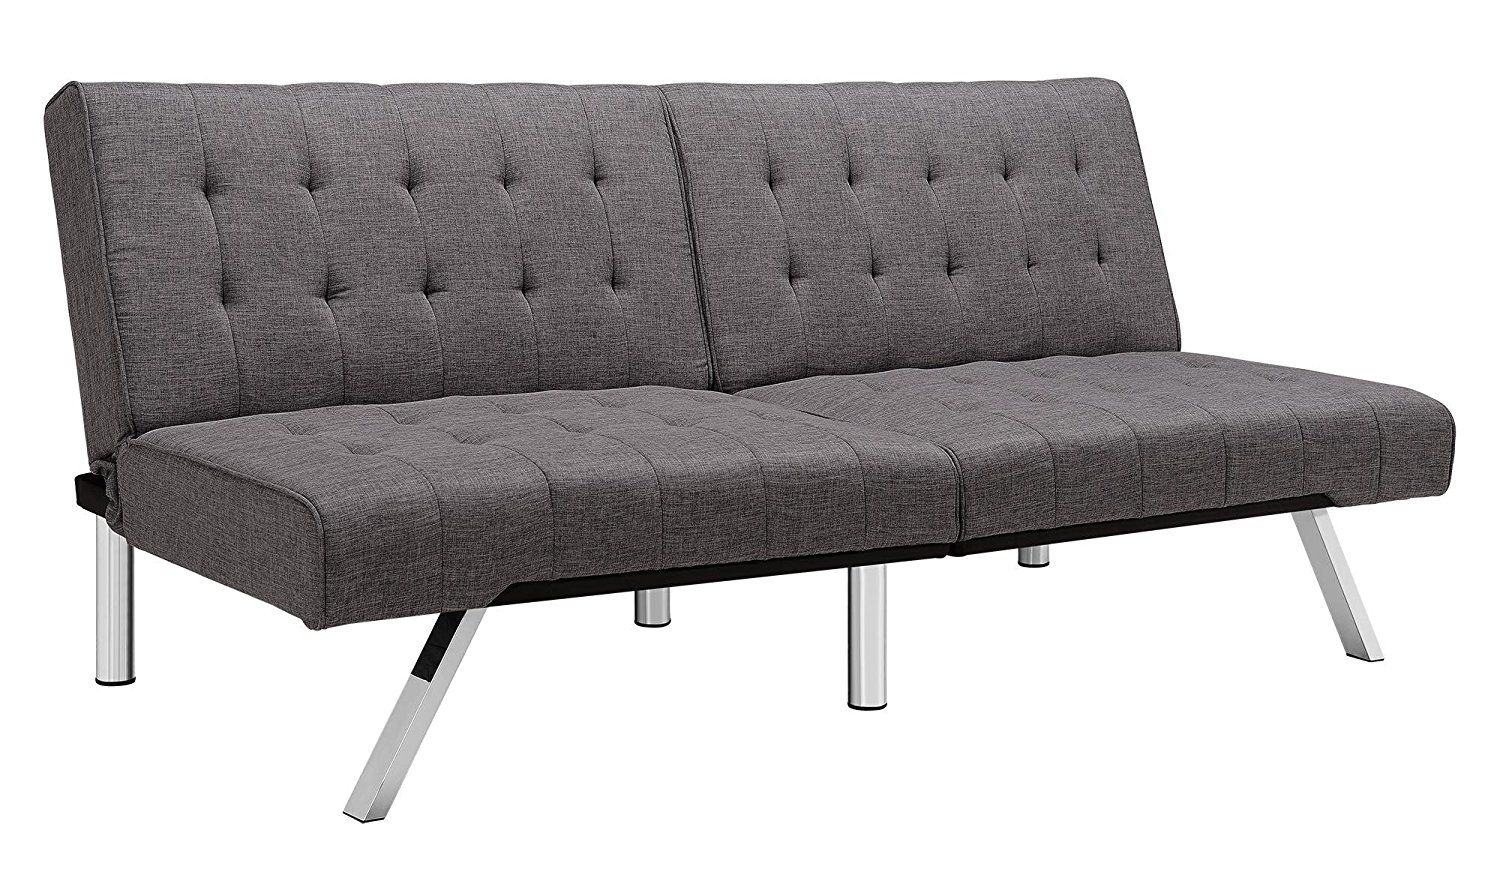 best sofa bed price collection-Lovely sofa Bed Price Construction